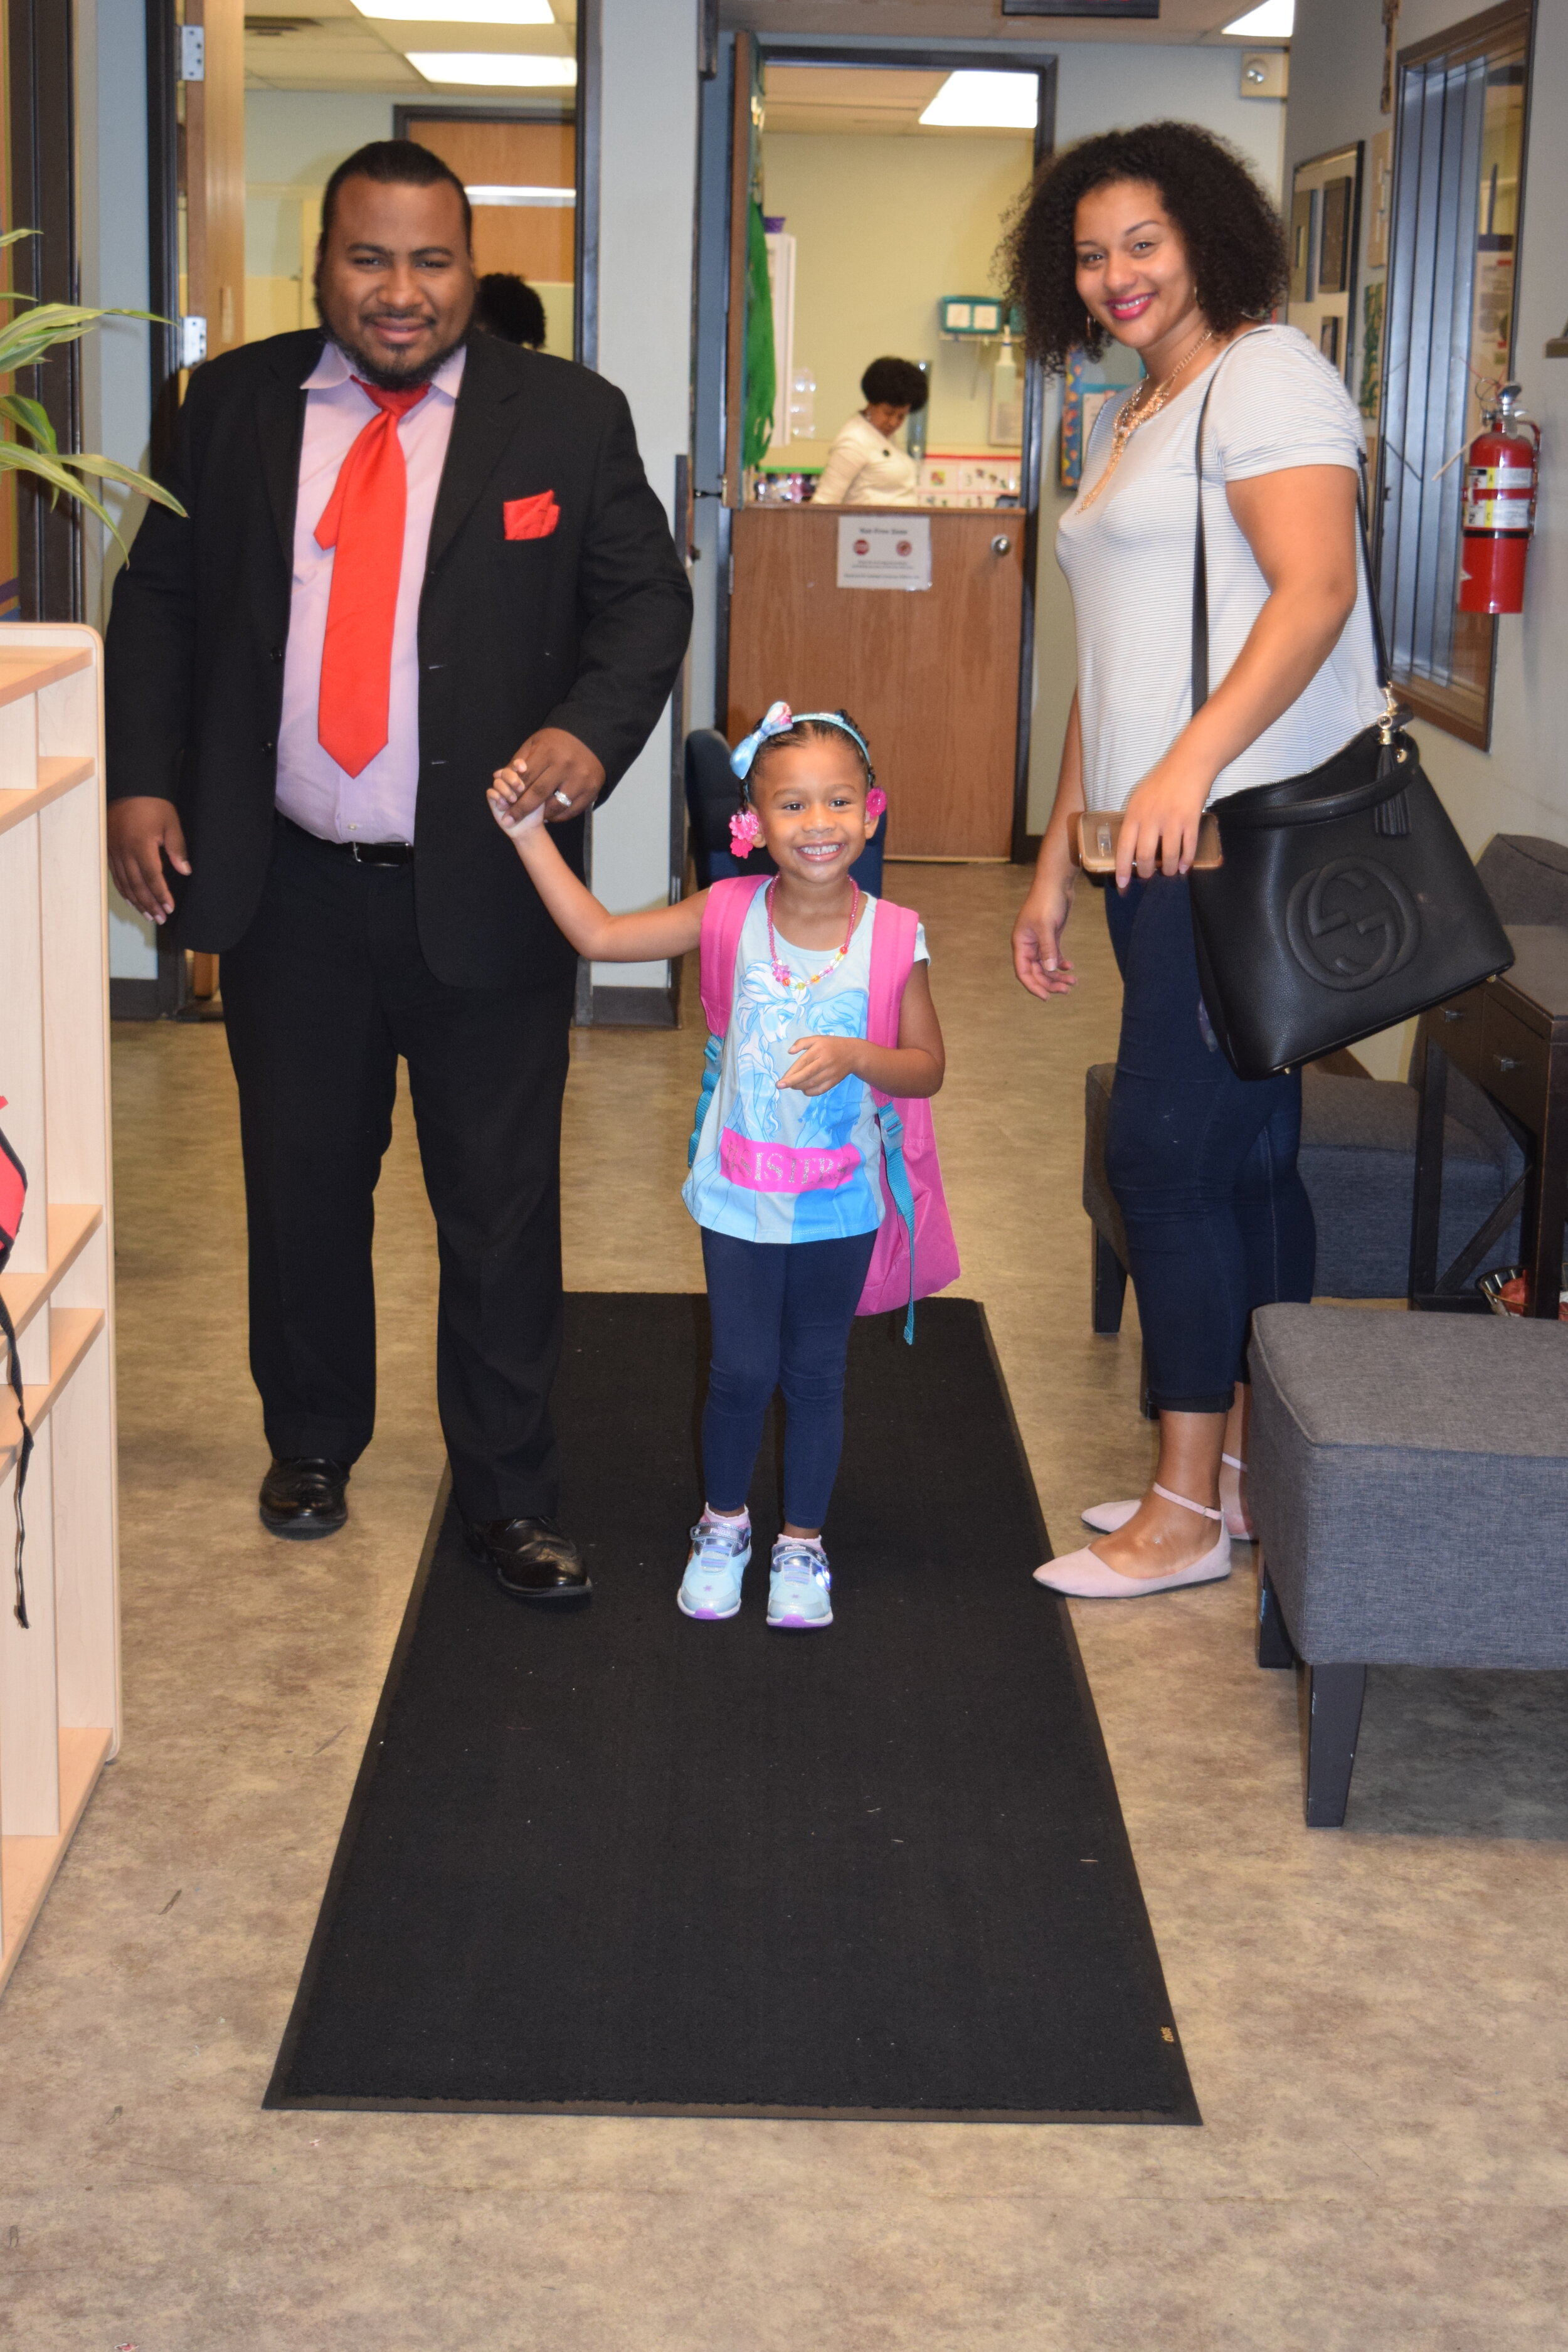 Desi (center) walks into the Children's Learning Center on her first day of preschool with her father, Dennis Thompson, and mother, Bonnie.